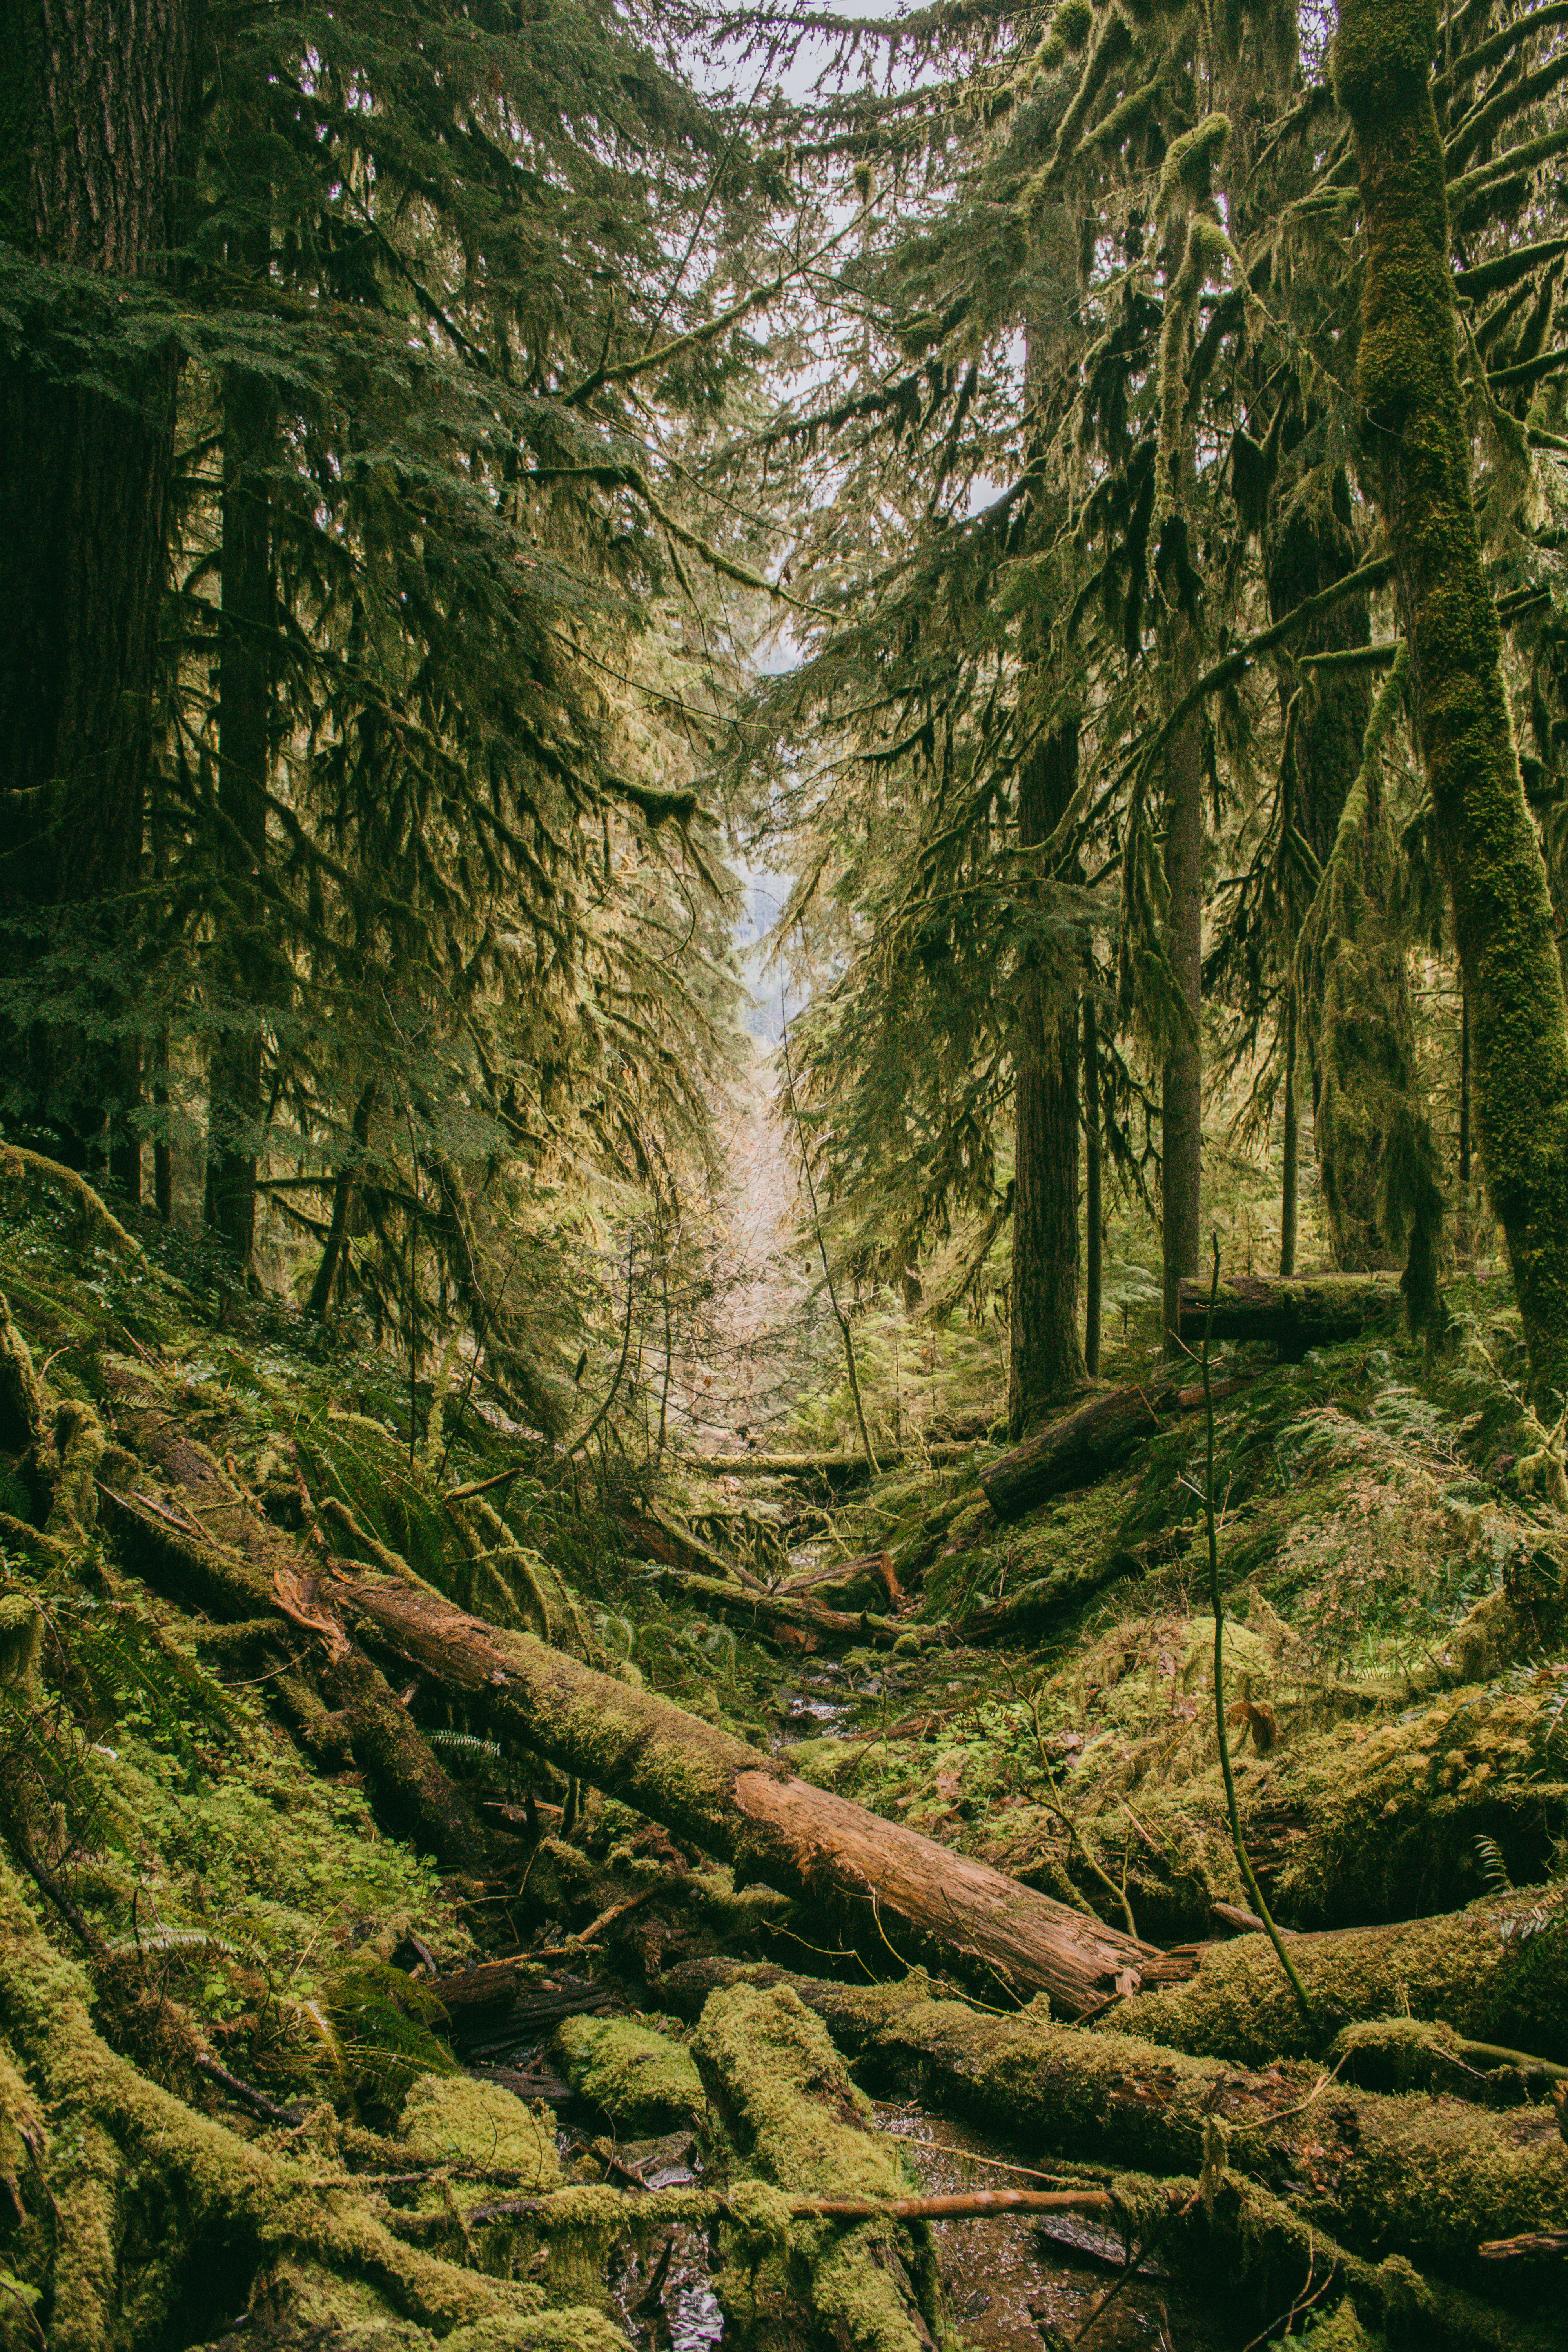 100 Forest Pictures Images Download Free Photos on Unsplash